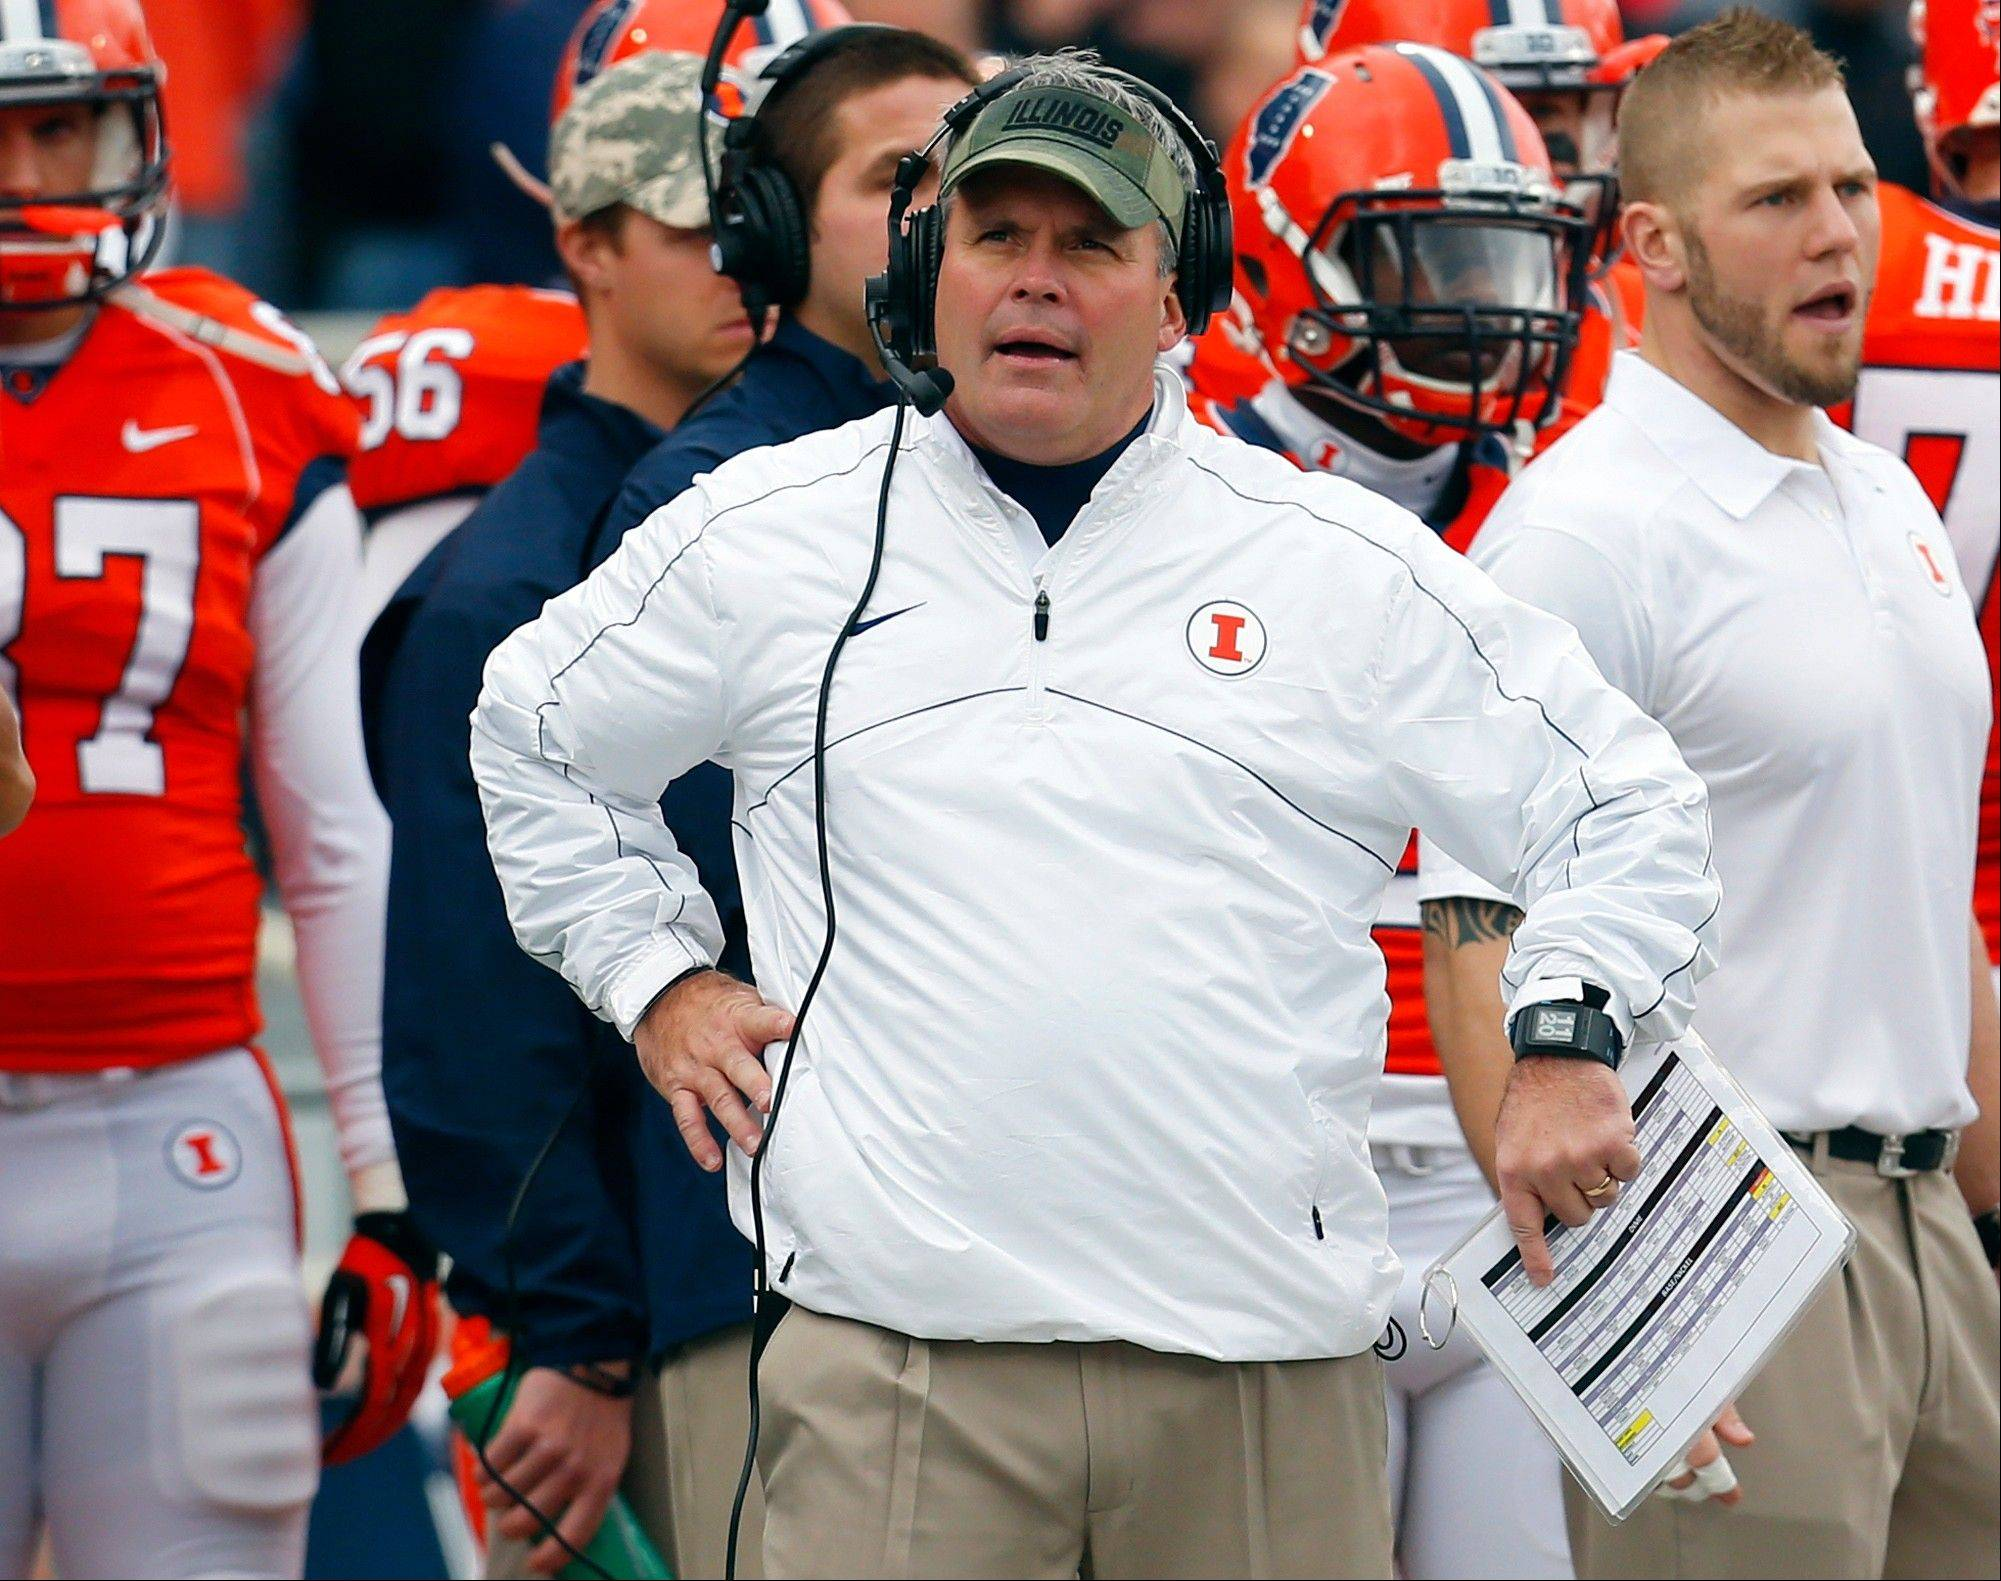 Tim Beckman, who recently said he would not cheat to win, will be back next season to coach the Illinois football team.